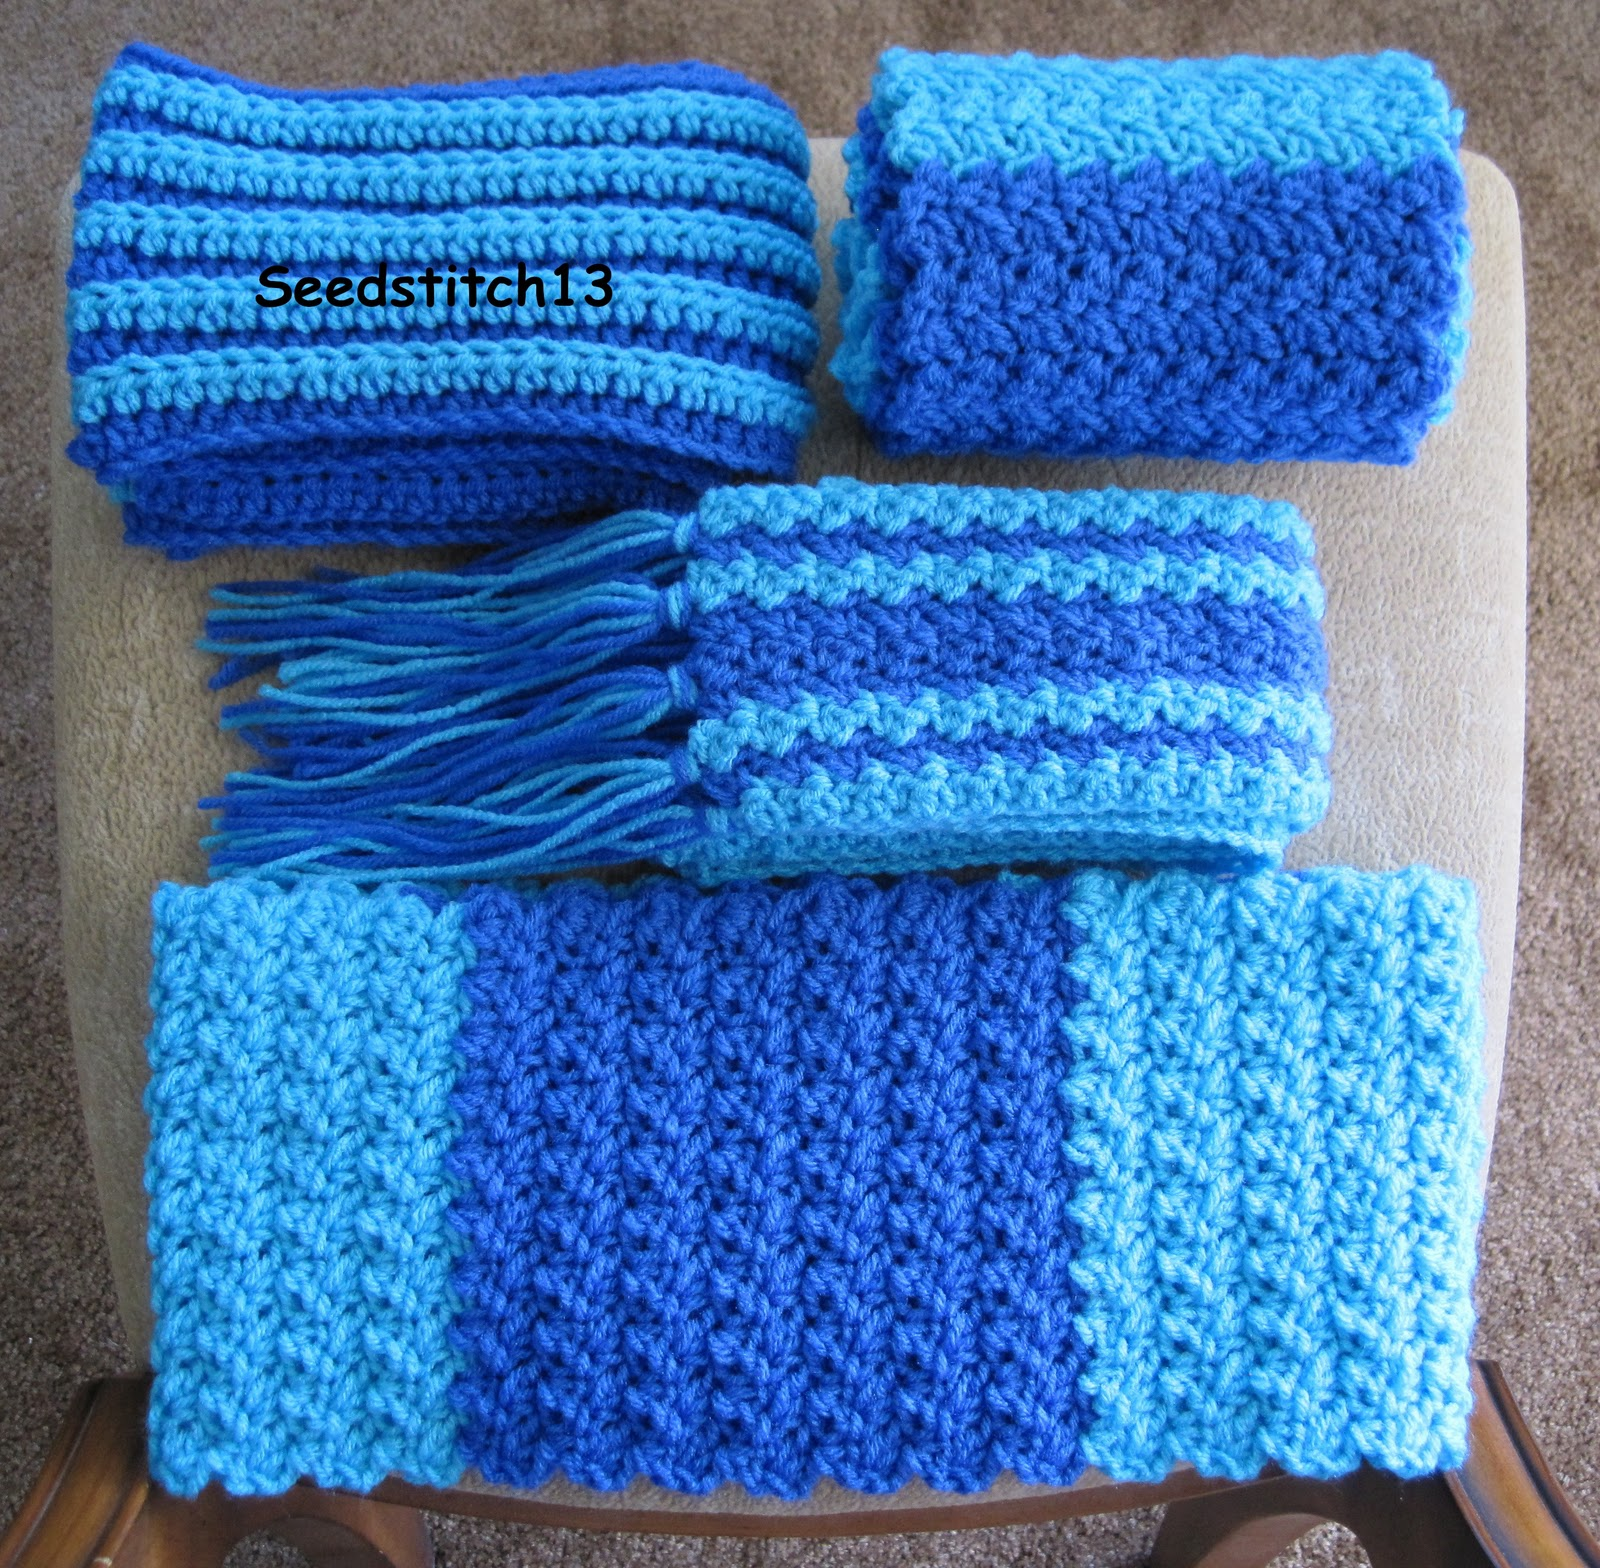 Seedstitch13: Special Olympics Scarves